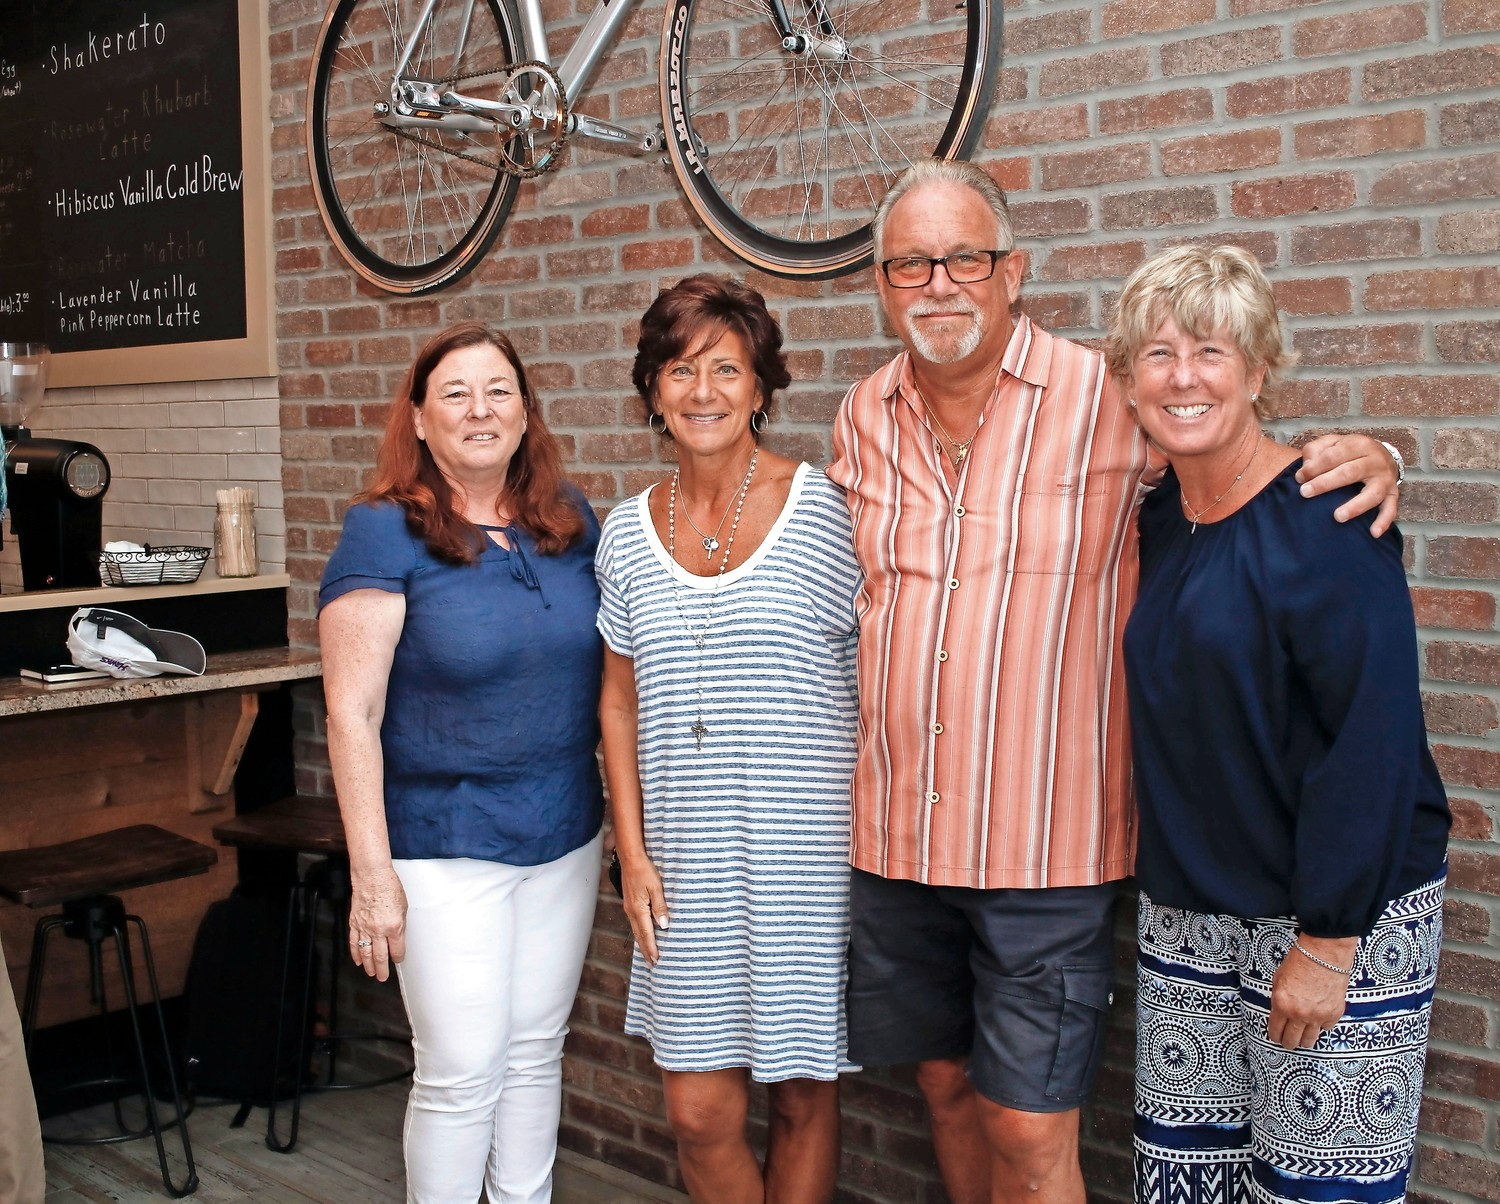 At the grand opening of Kookaburra Coffee Company in Malverne, Chamber of Commerce member Kathi Monroe, far left, owners Cindy and Michael DelGatto, and Mayor Patti McDonald celebrated the launch of the village's only coffee bar, on Hempstead Avenue, near the Long Island Rail Road station.